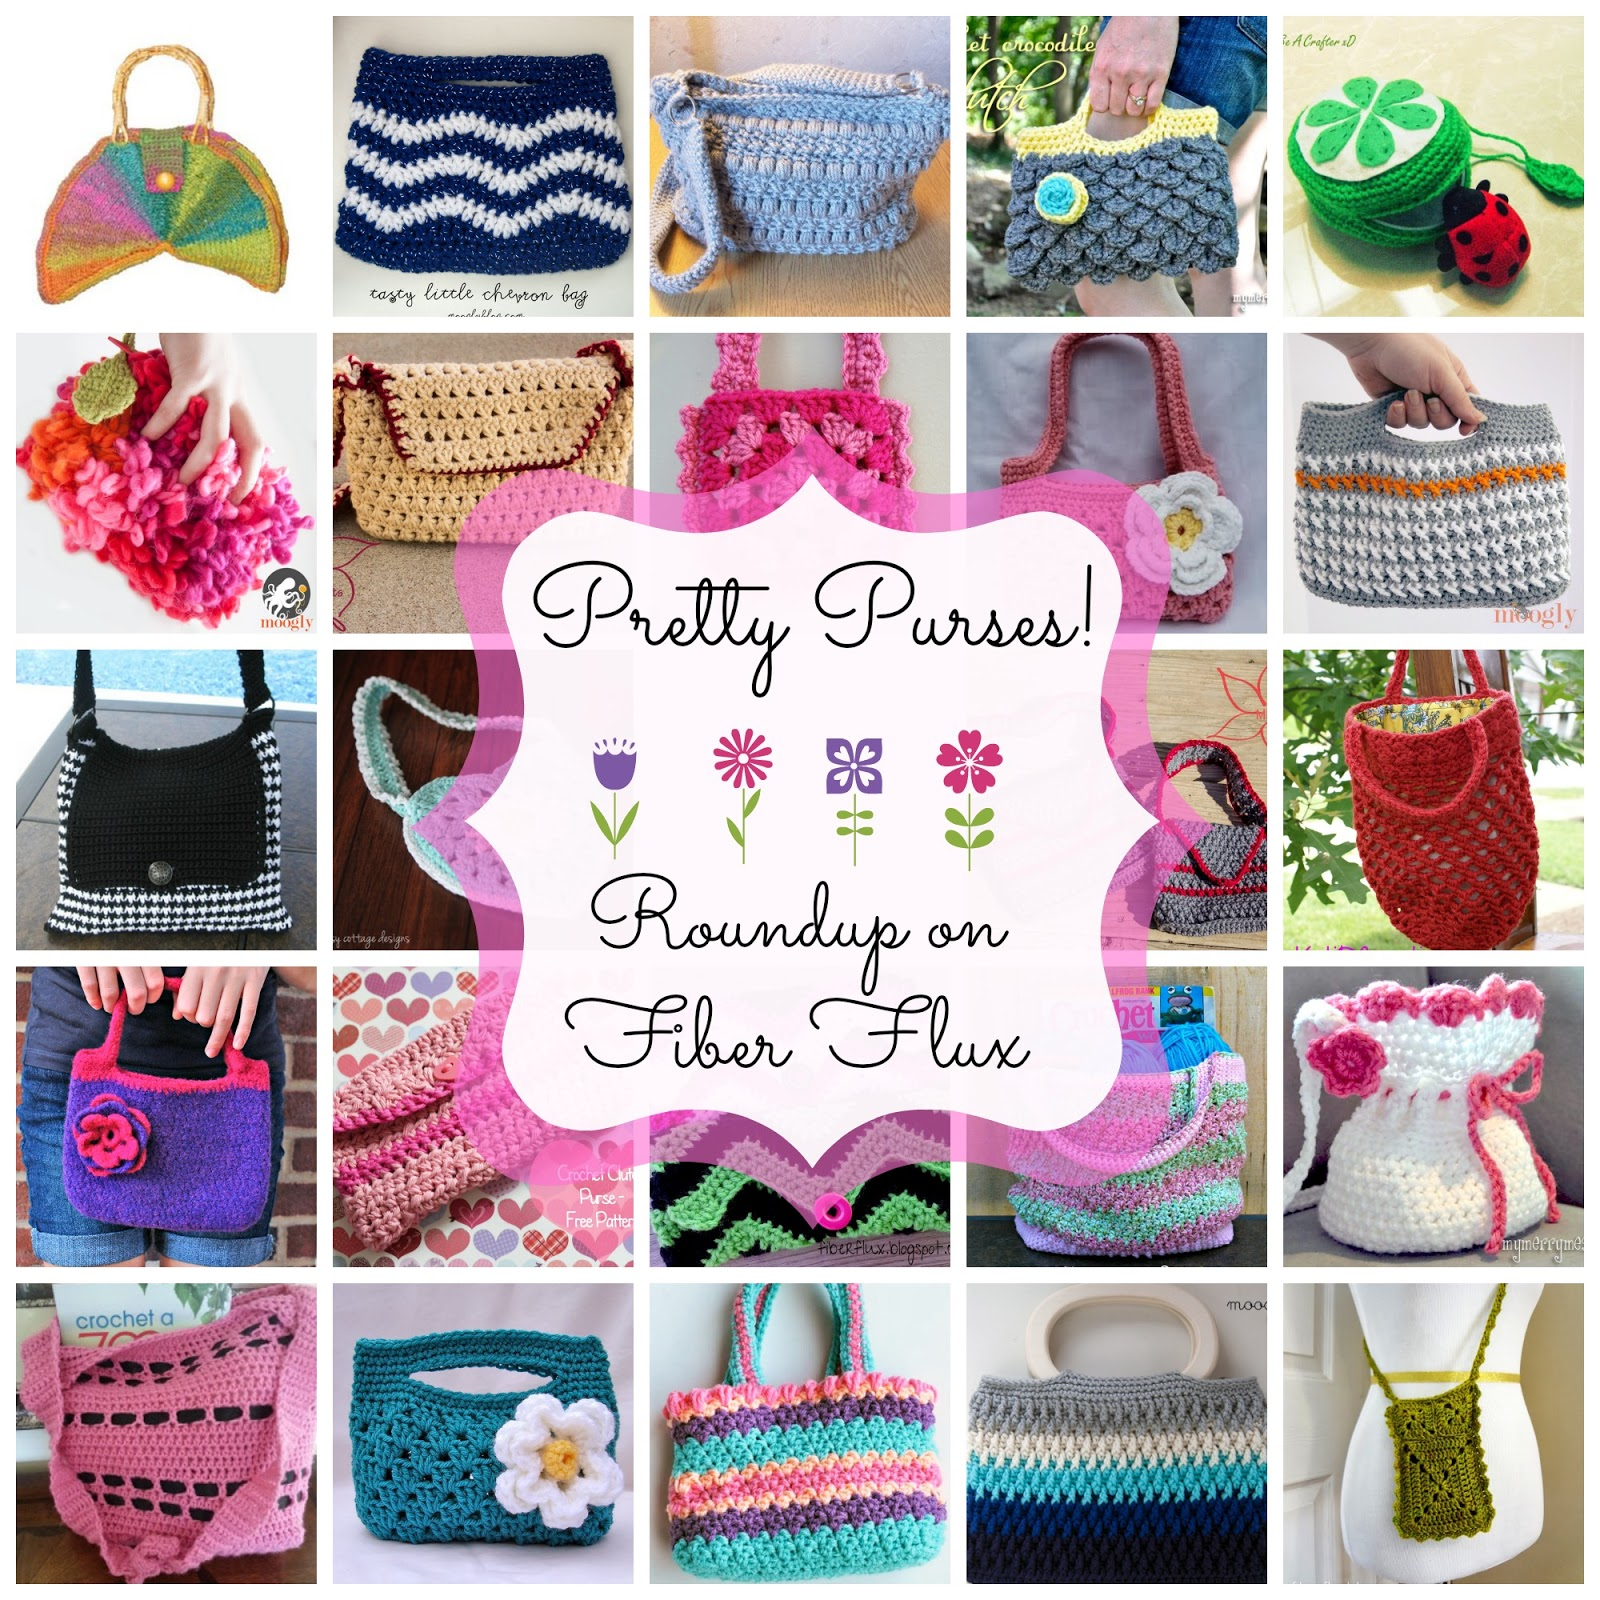 Fiber flux pretty purses 20 free crochet purse patterns i love purses and you can never have too many in my opinion here are some purses ive collected just for you from large bags for toting everything bankloansurffo Choice Image